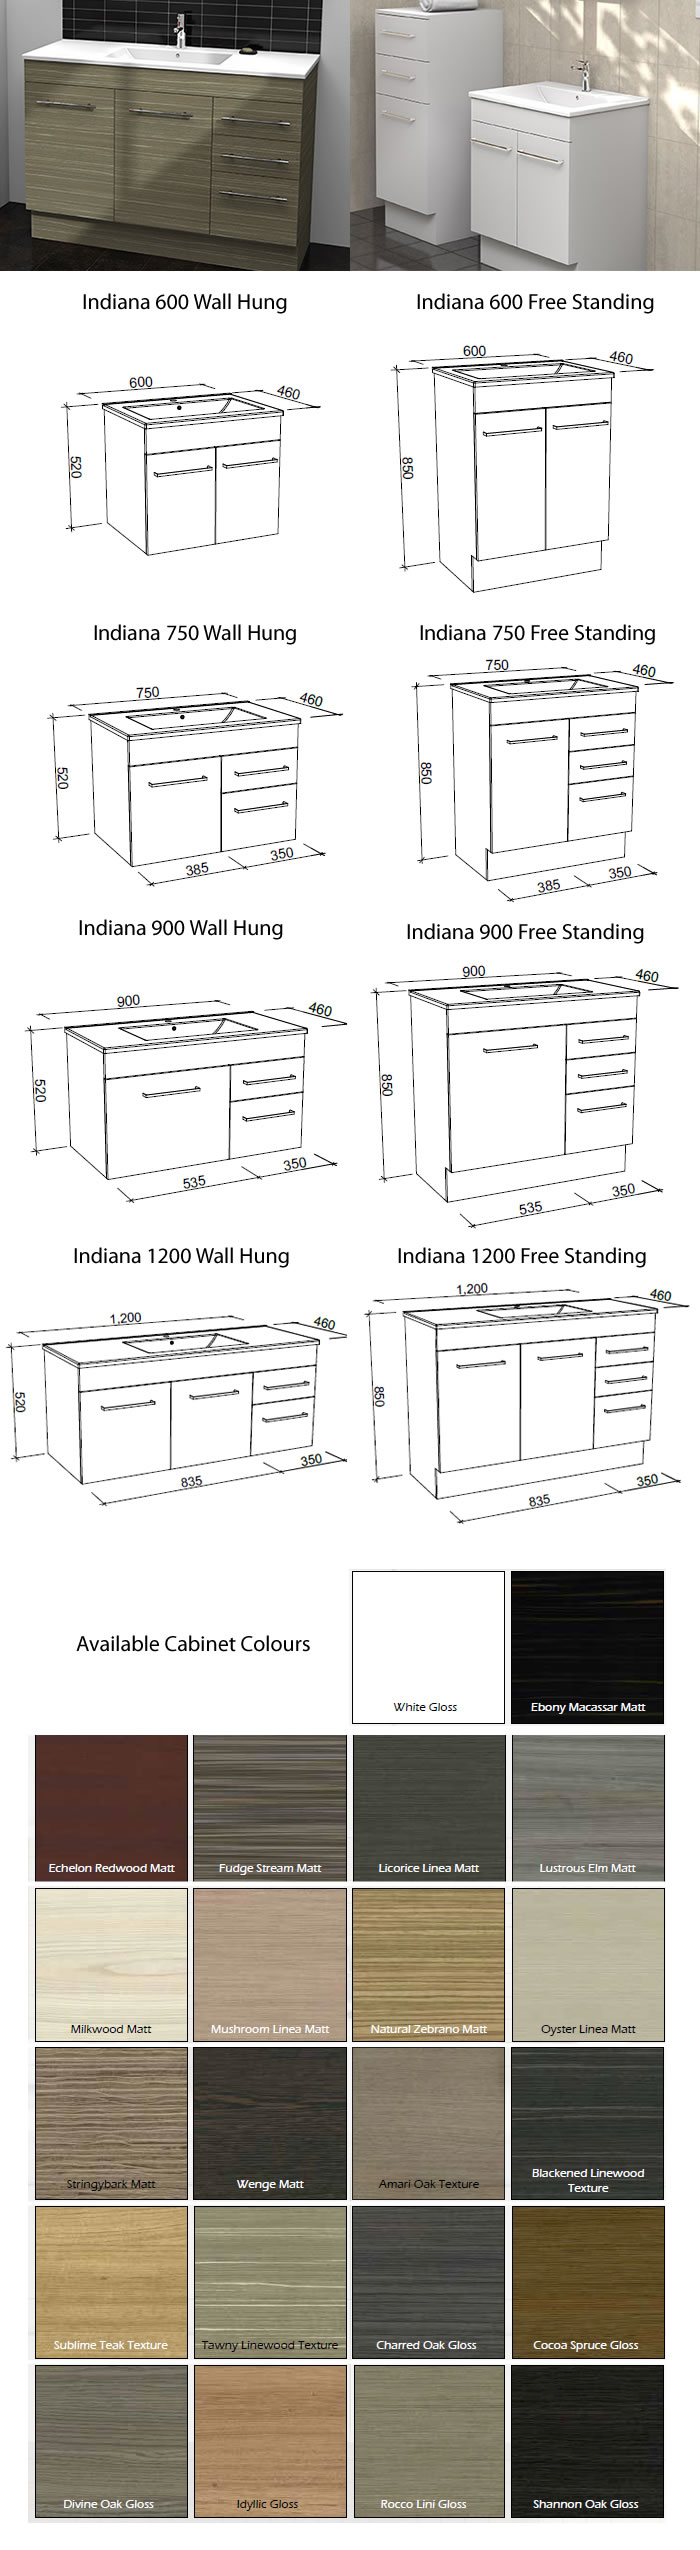 Timberline Indiana Vanity Cabinet specifications